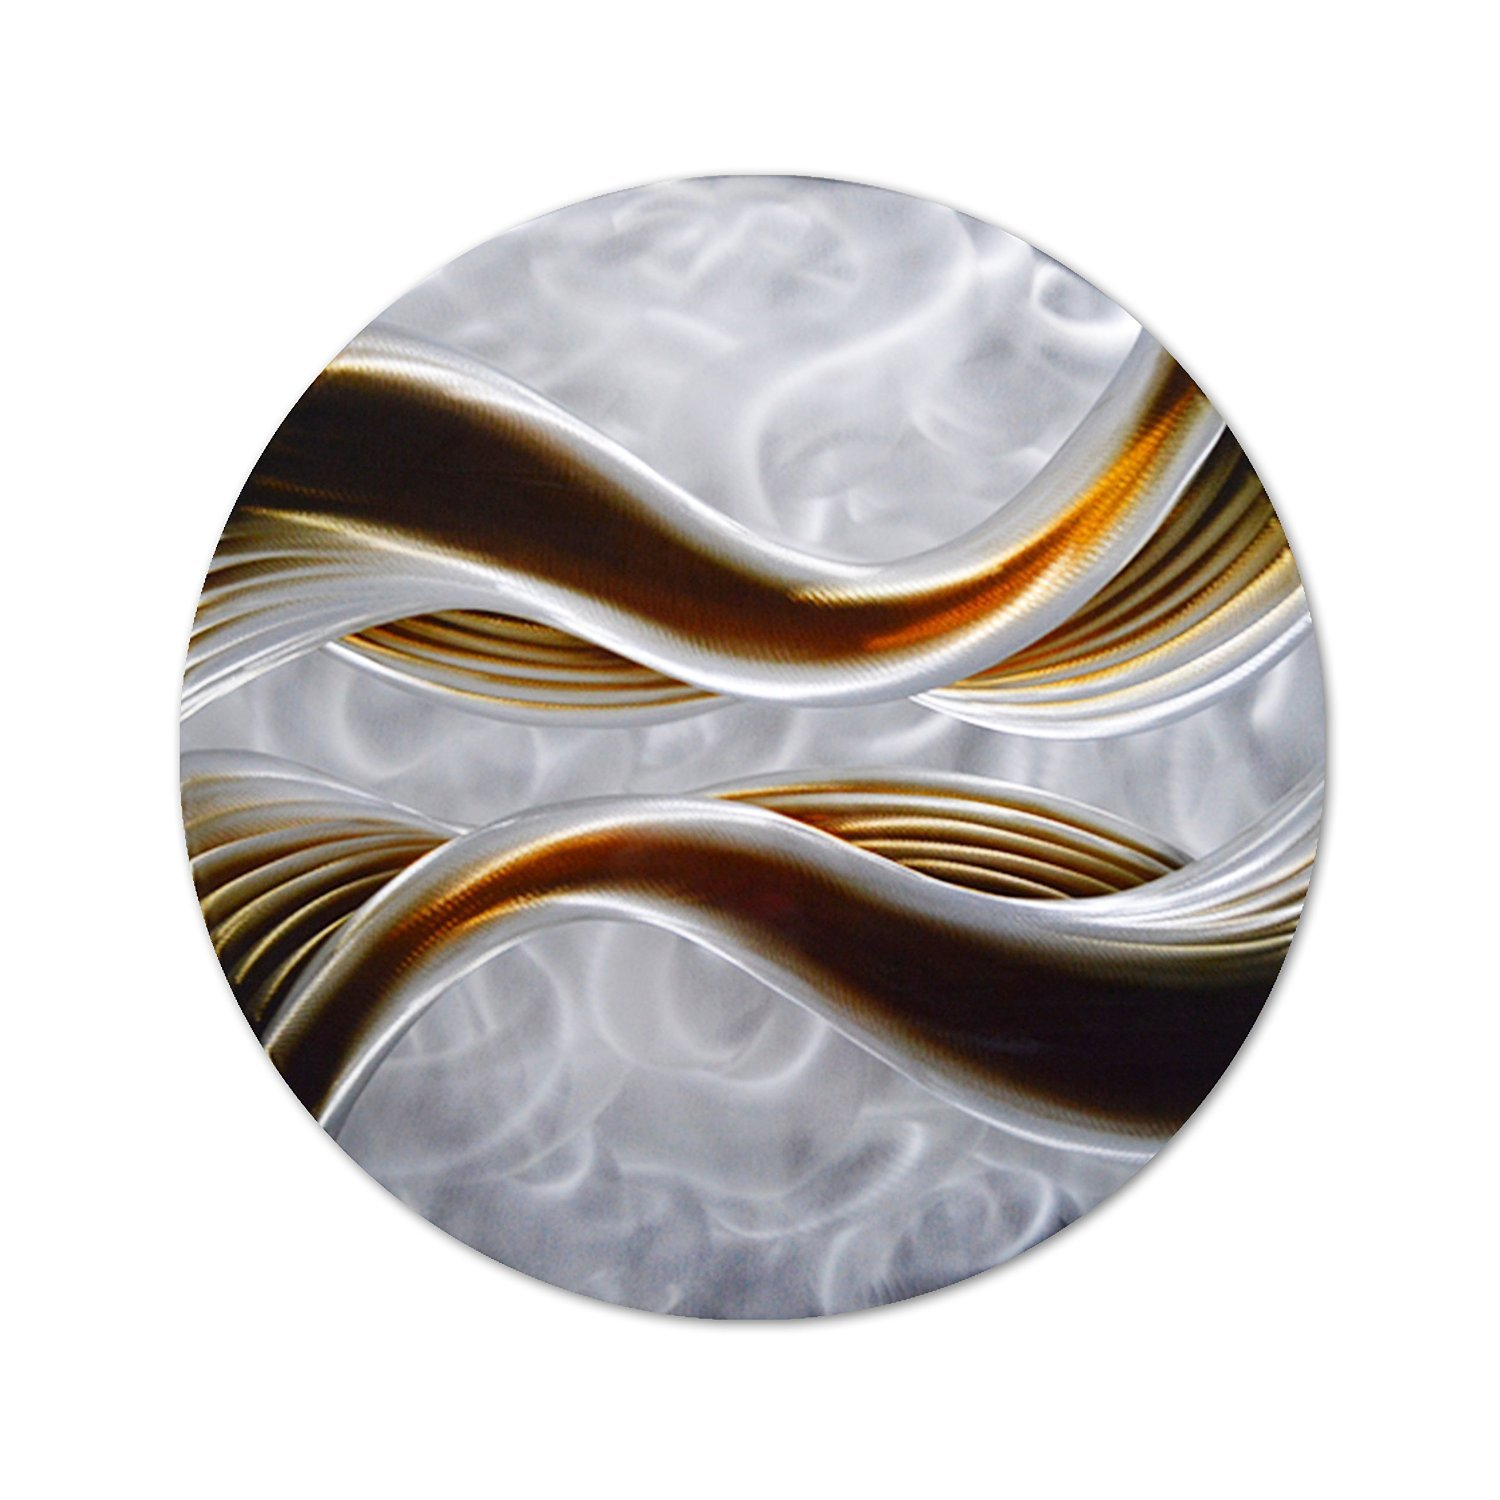 "Pure Art Caramel Desire Metal Wall Art, Round Metal Wall Decor in Abstract Waves Design, 3D Wall Art for Modern and Contemporary Decor, One Panel Measures 32""x 32"""